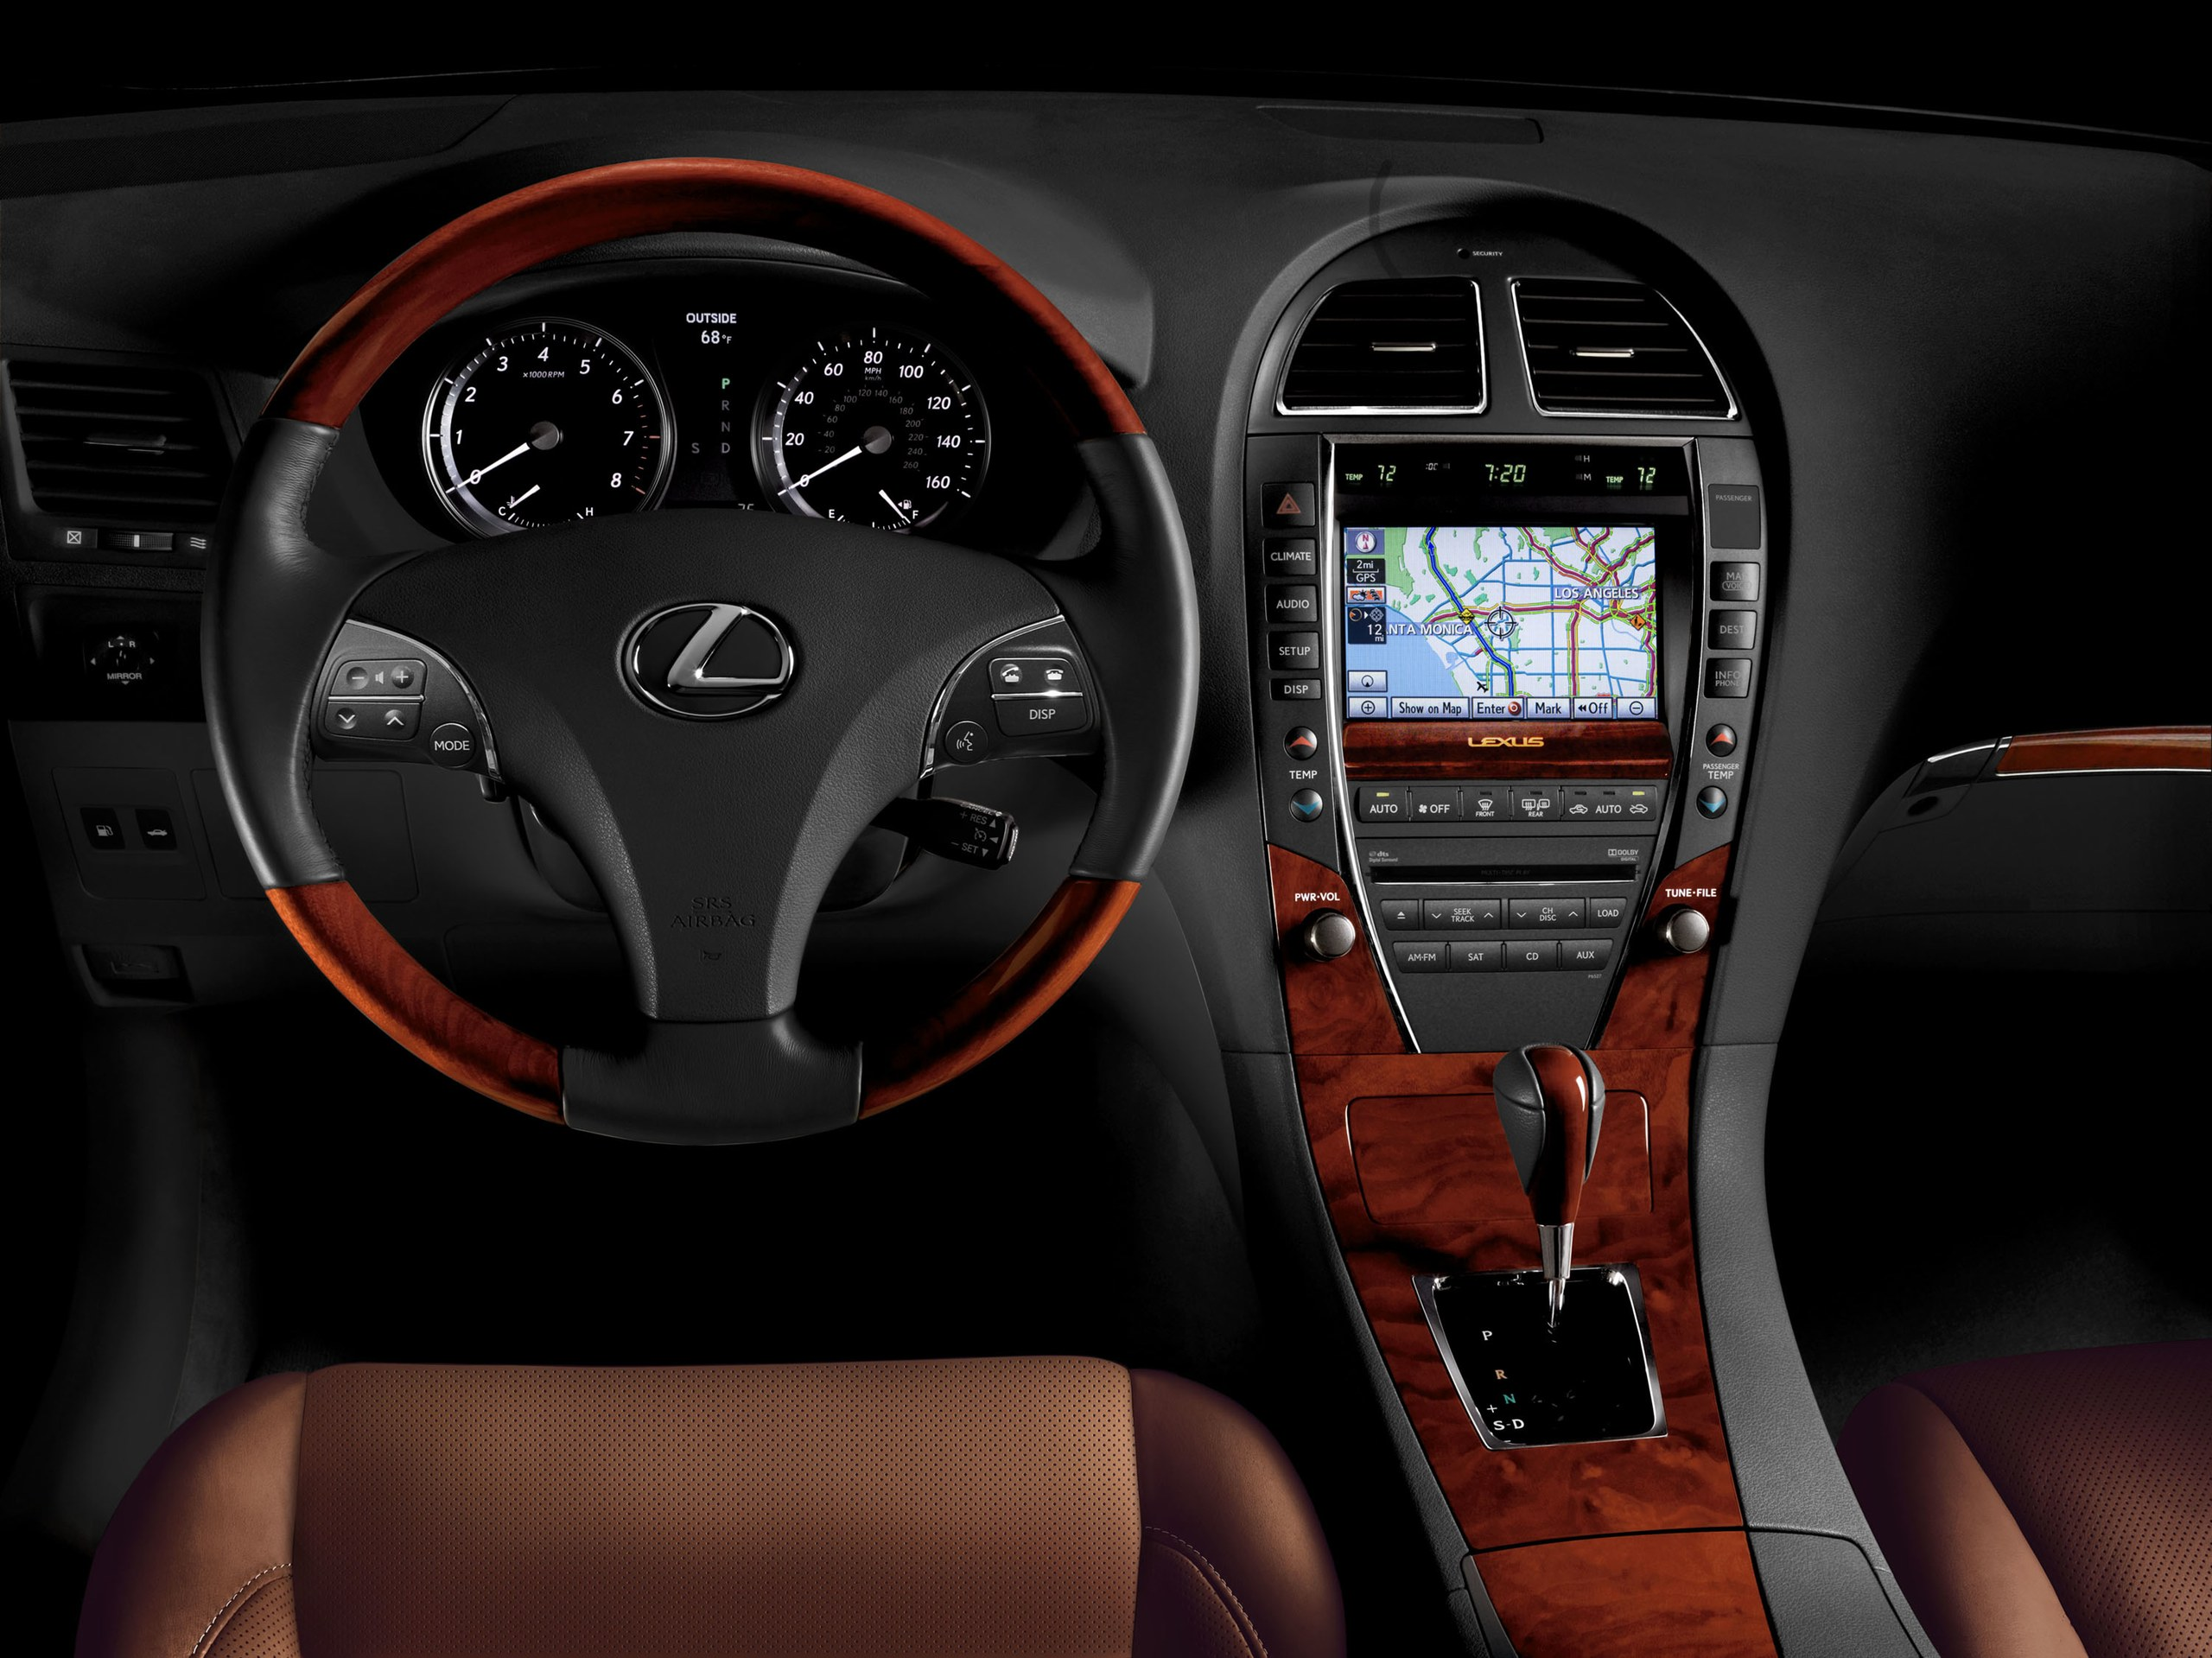 Superb Lexus ES 350 Special Edition Interior